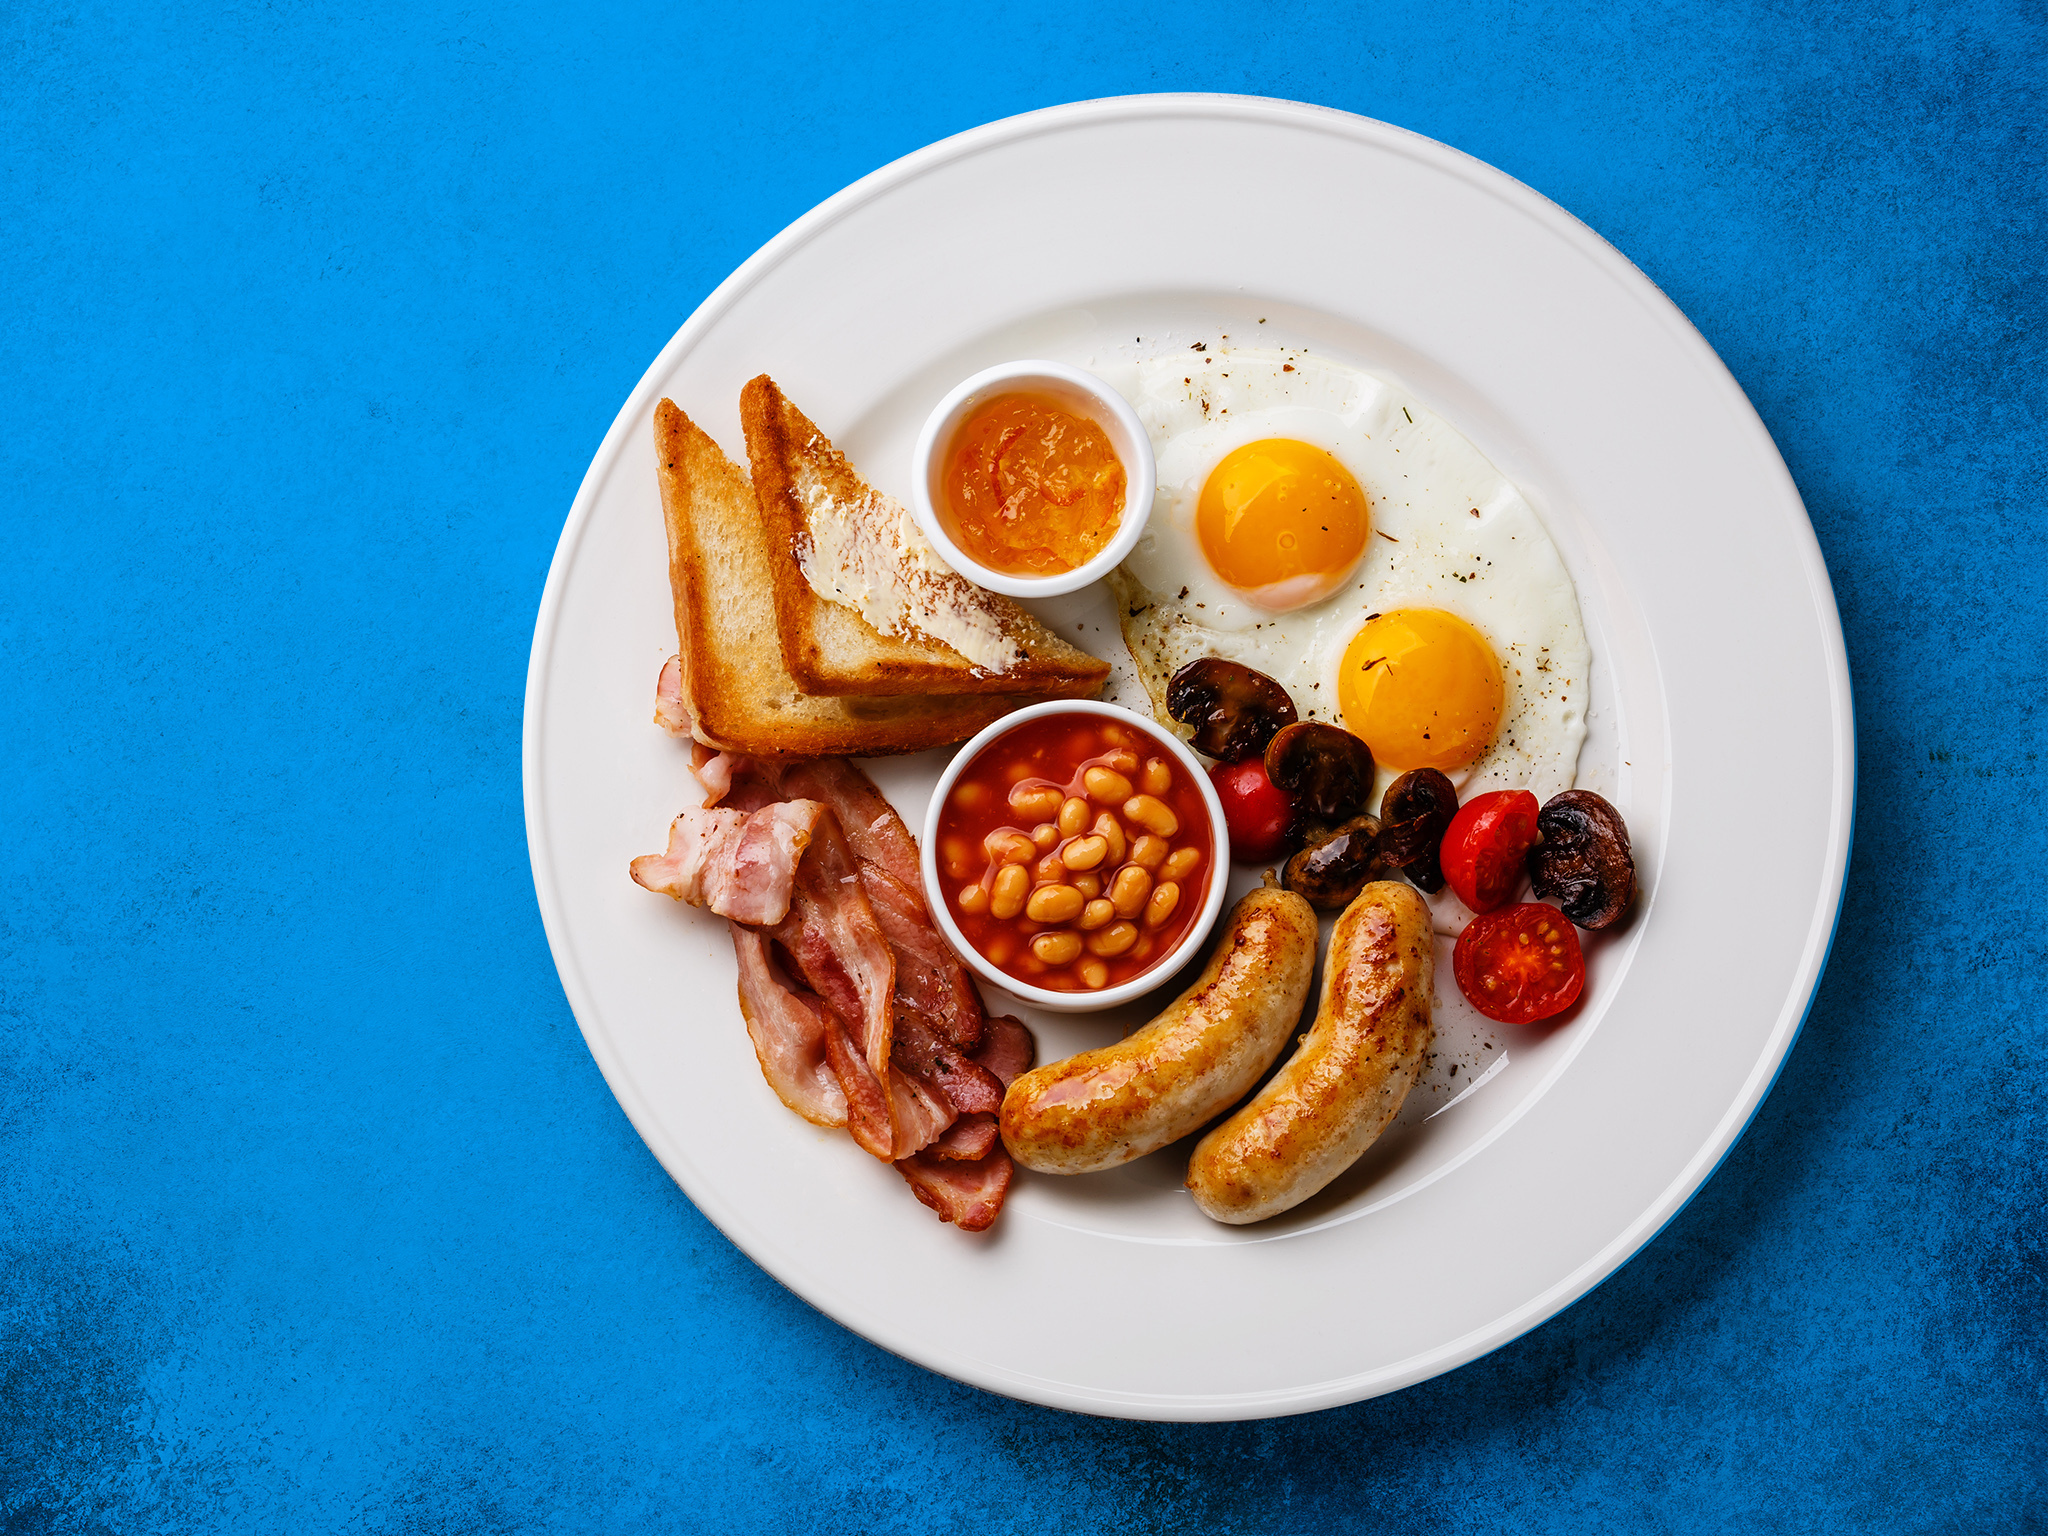 £38 for a fry-up? London's most expensive breakfasts